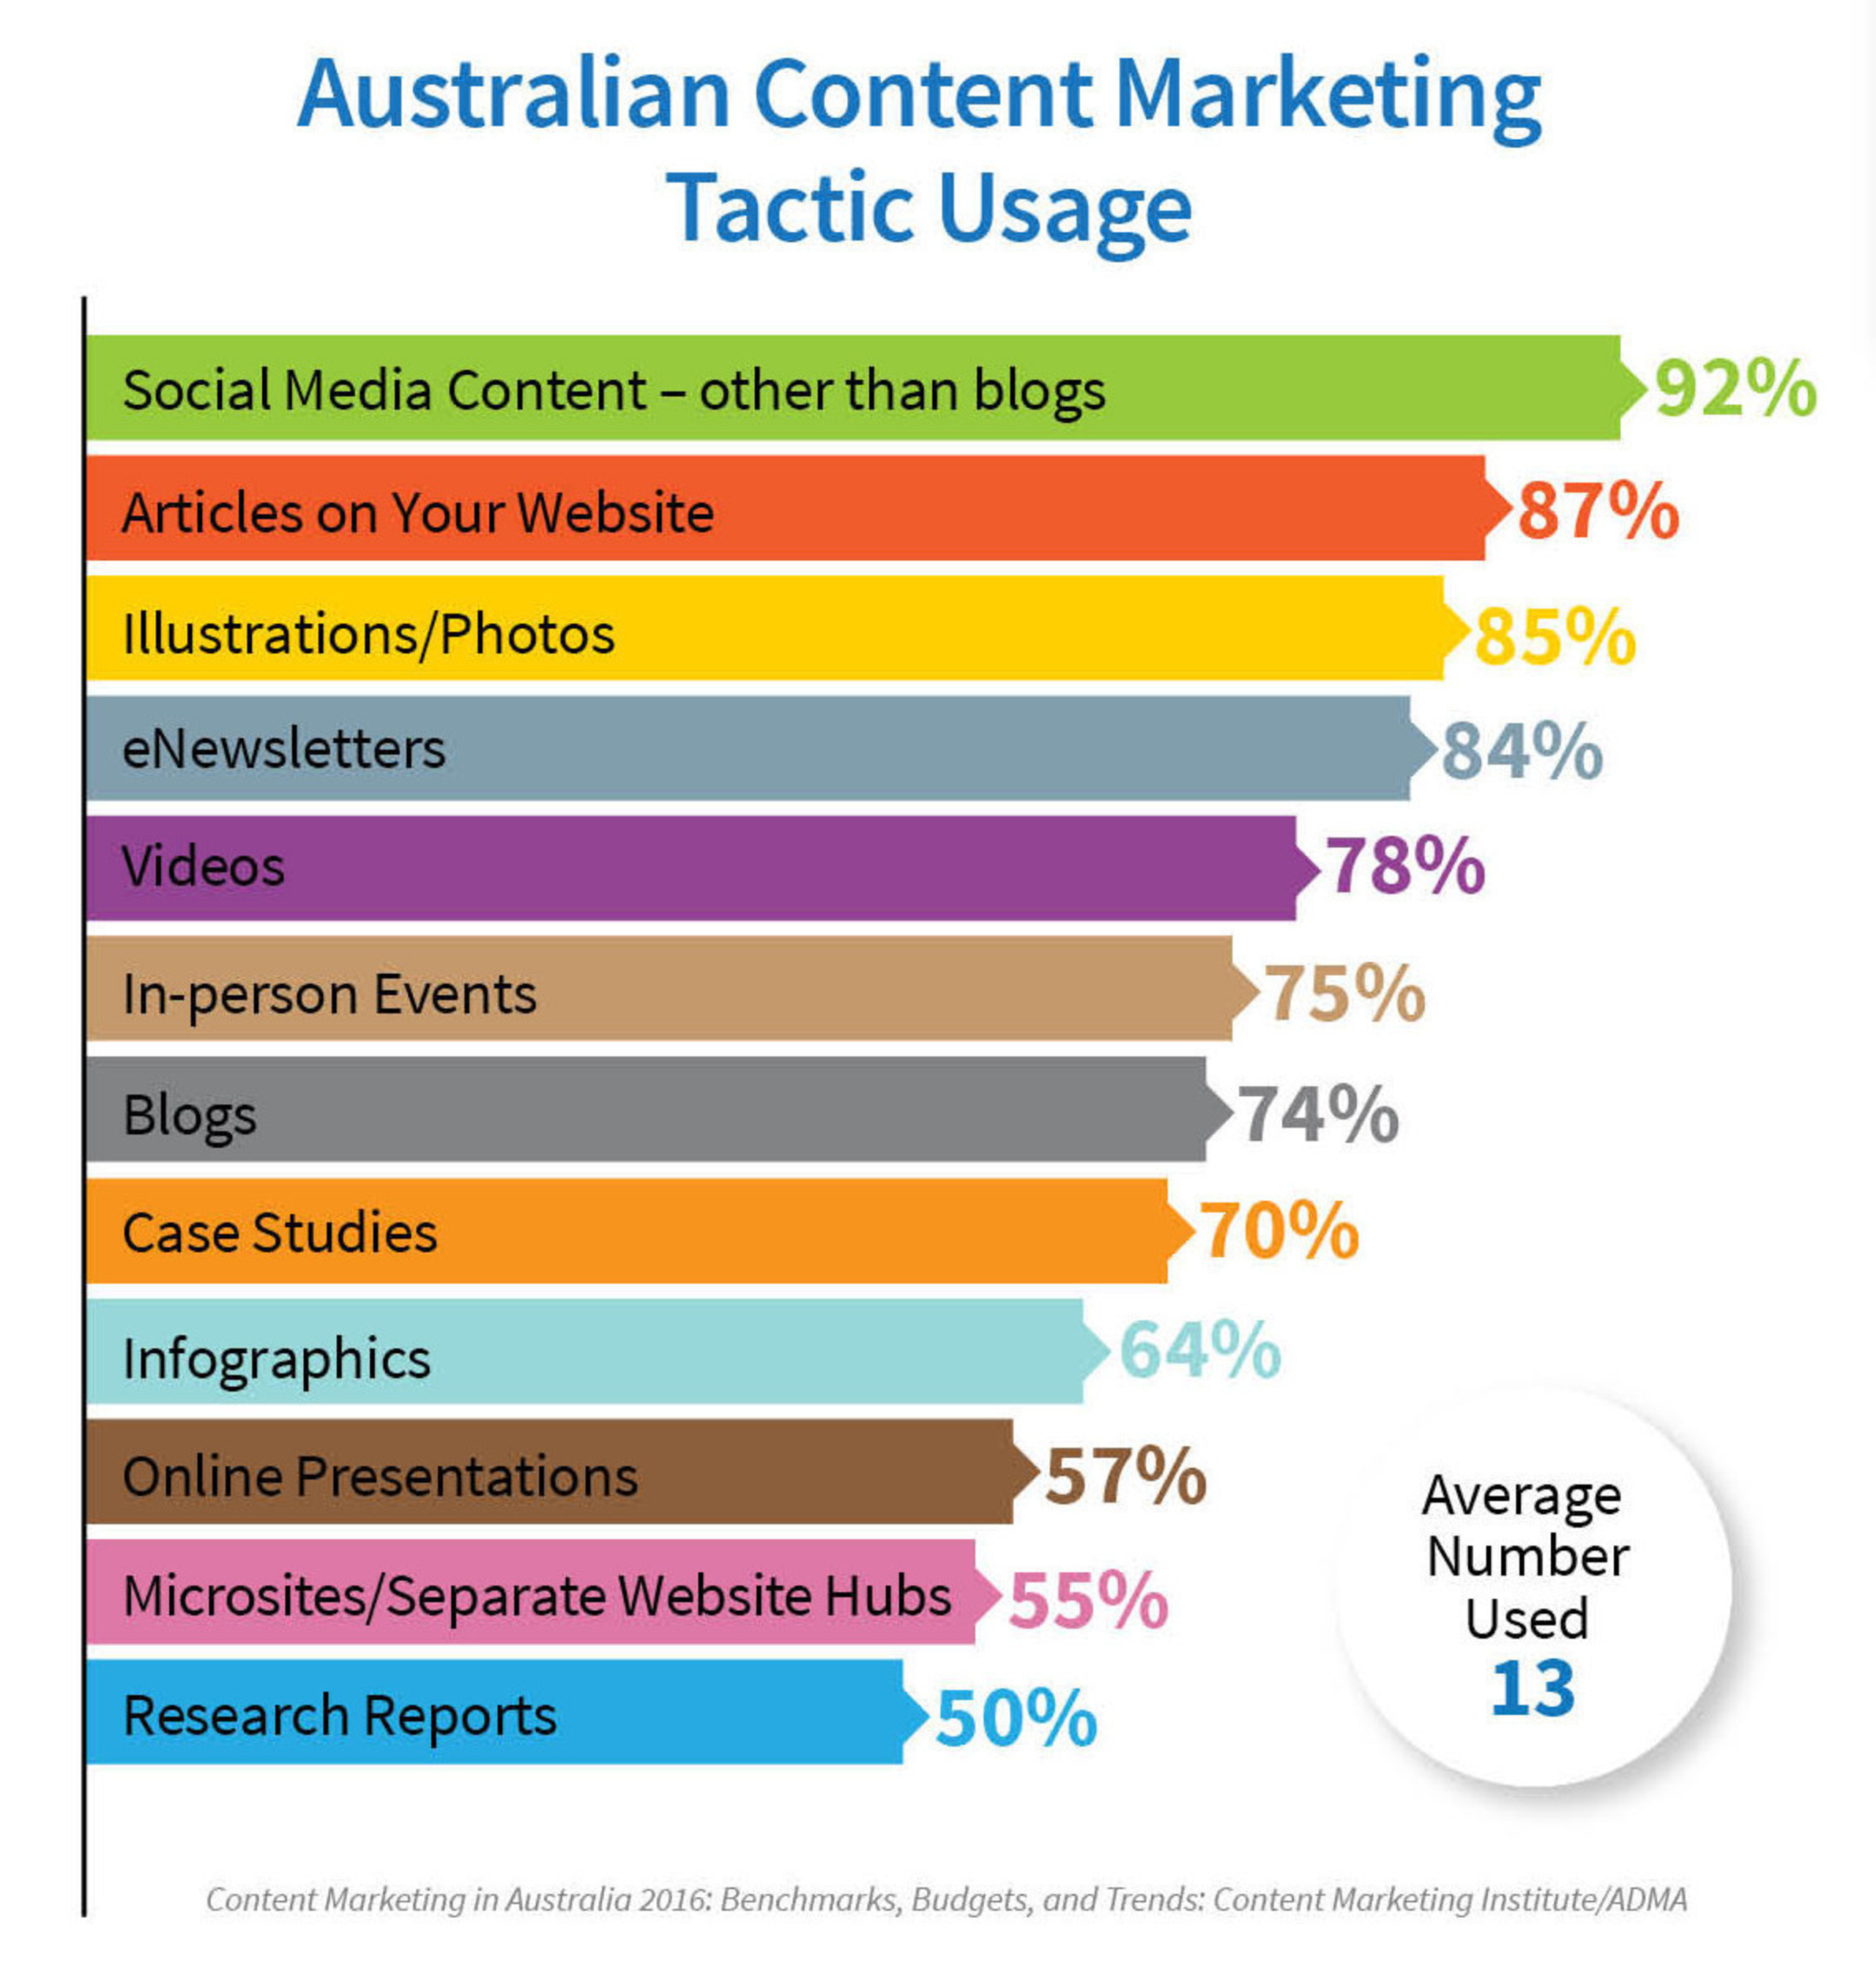 Video May be an Australian Content Marketer's Best Friend